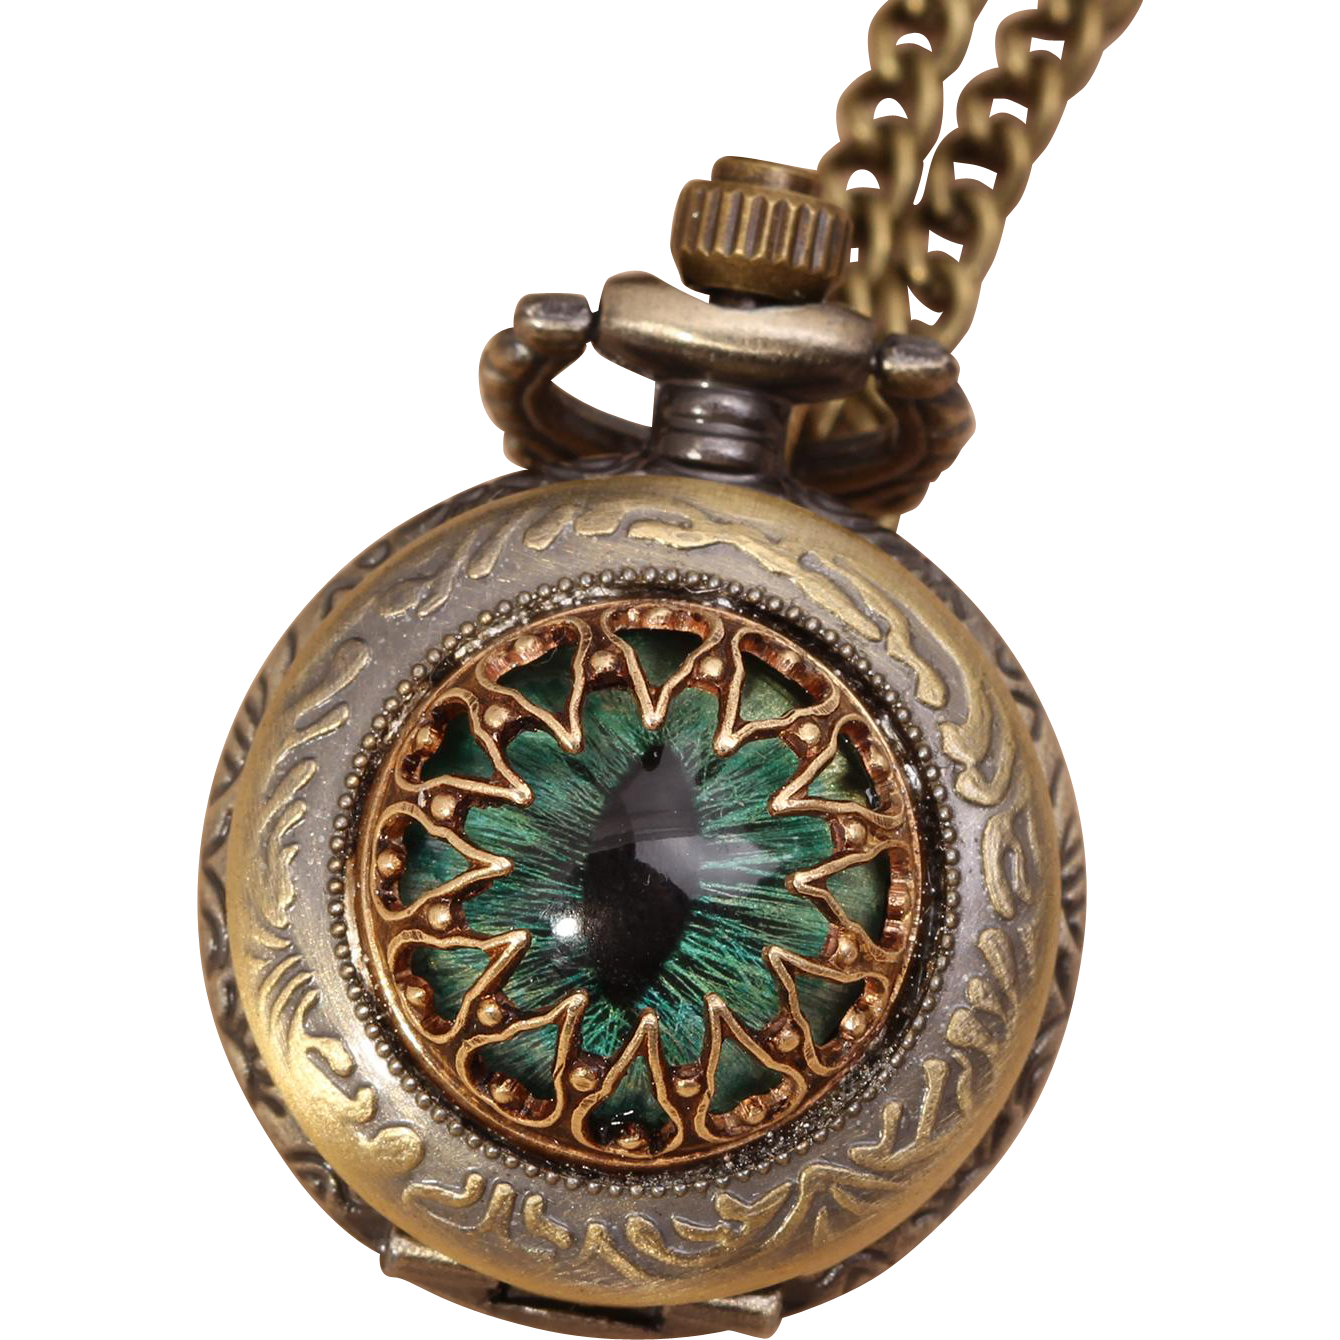 Dragon Eye Necklace Pocket Watch Necklace Eye Necklace Evil Eye Necklace Pocket Watch Working